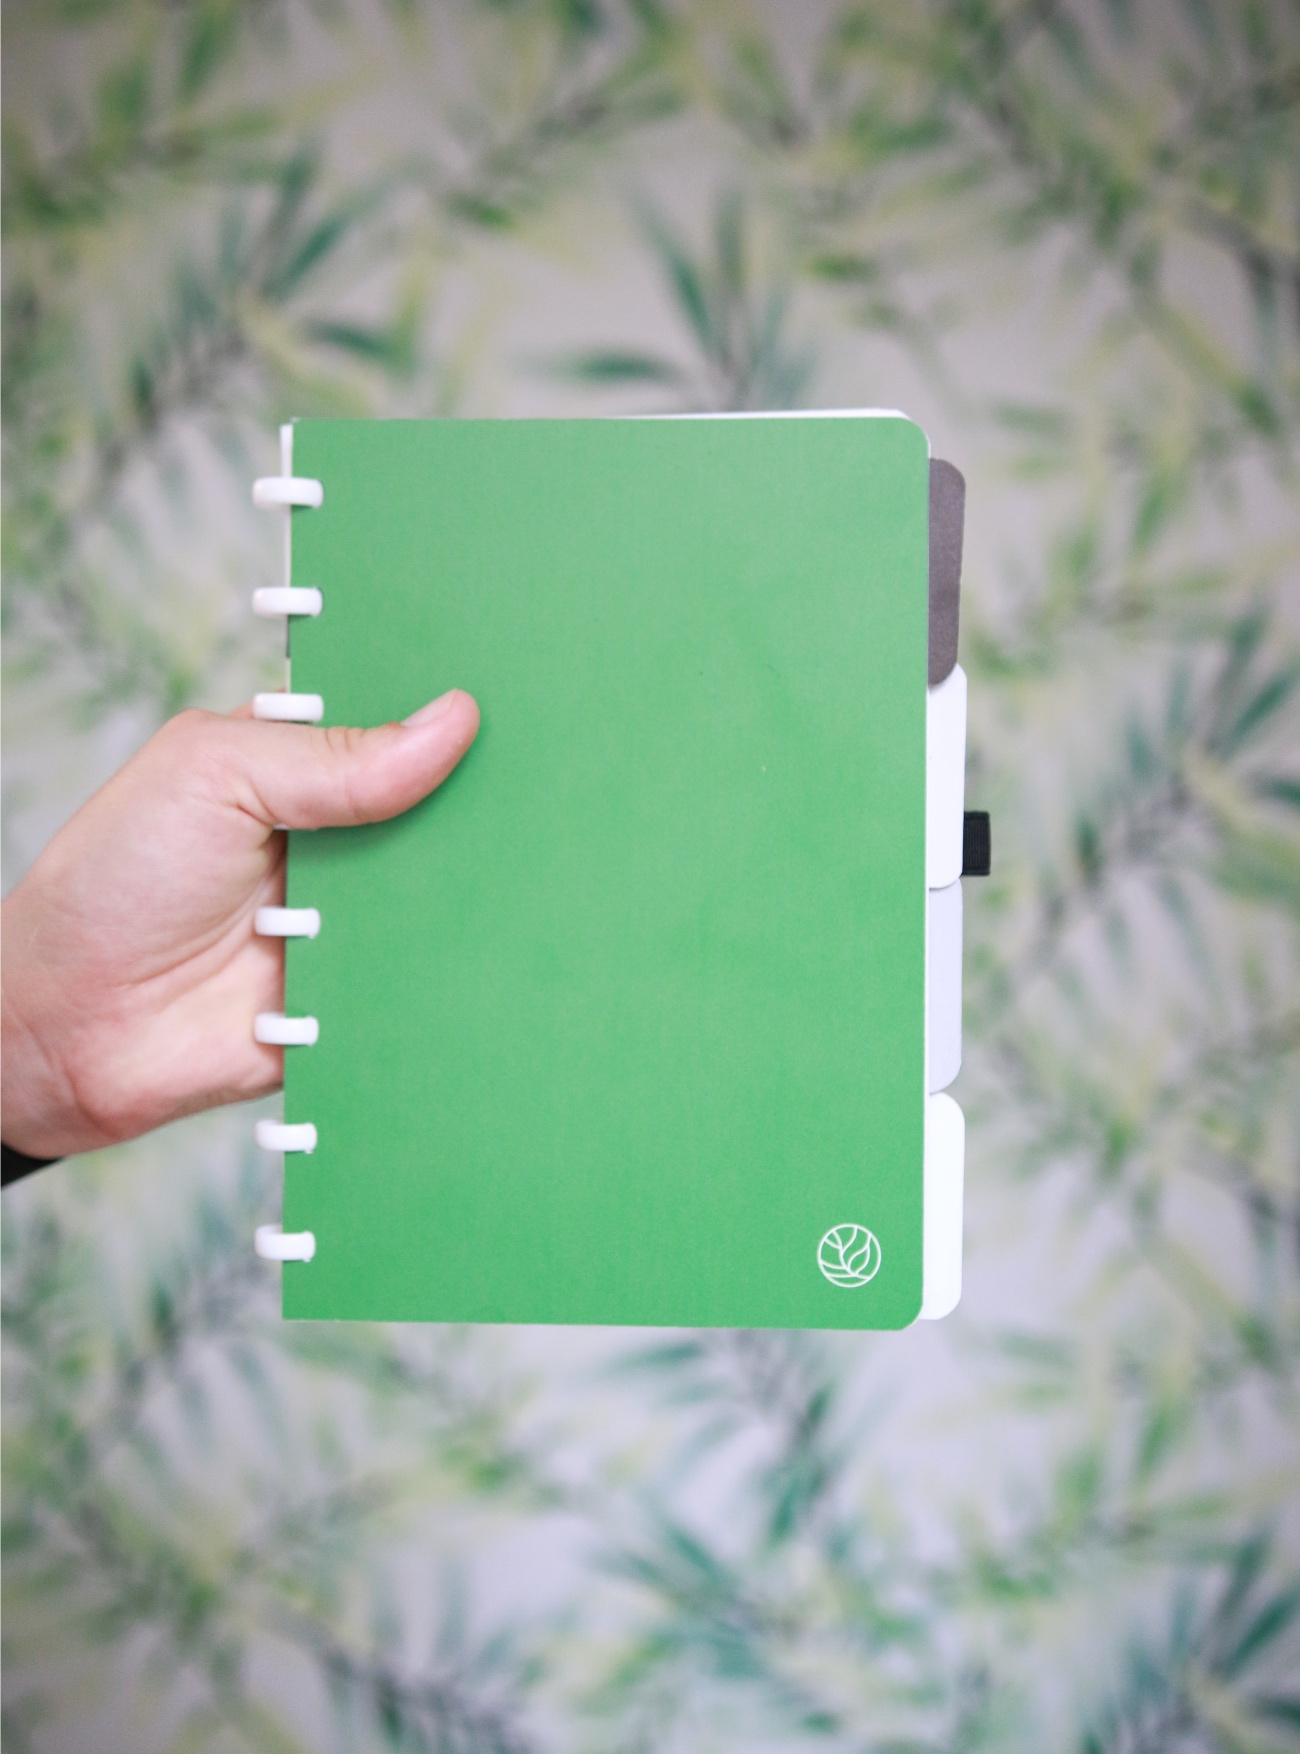 wat is een greenbook?